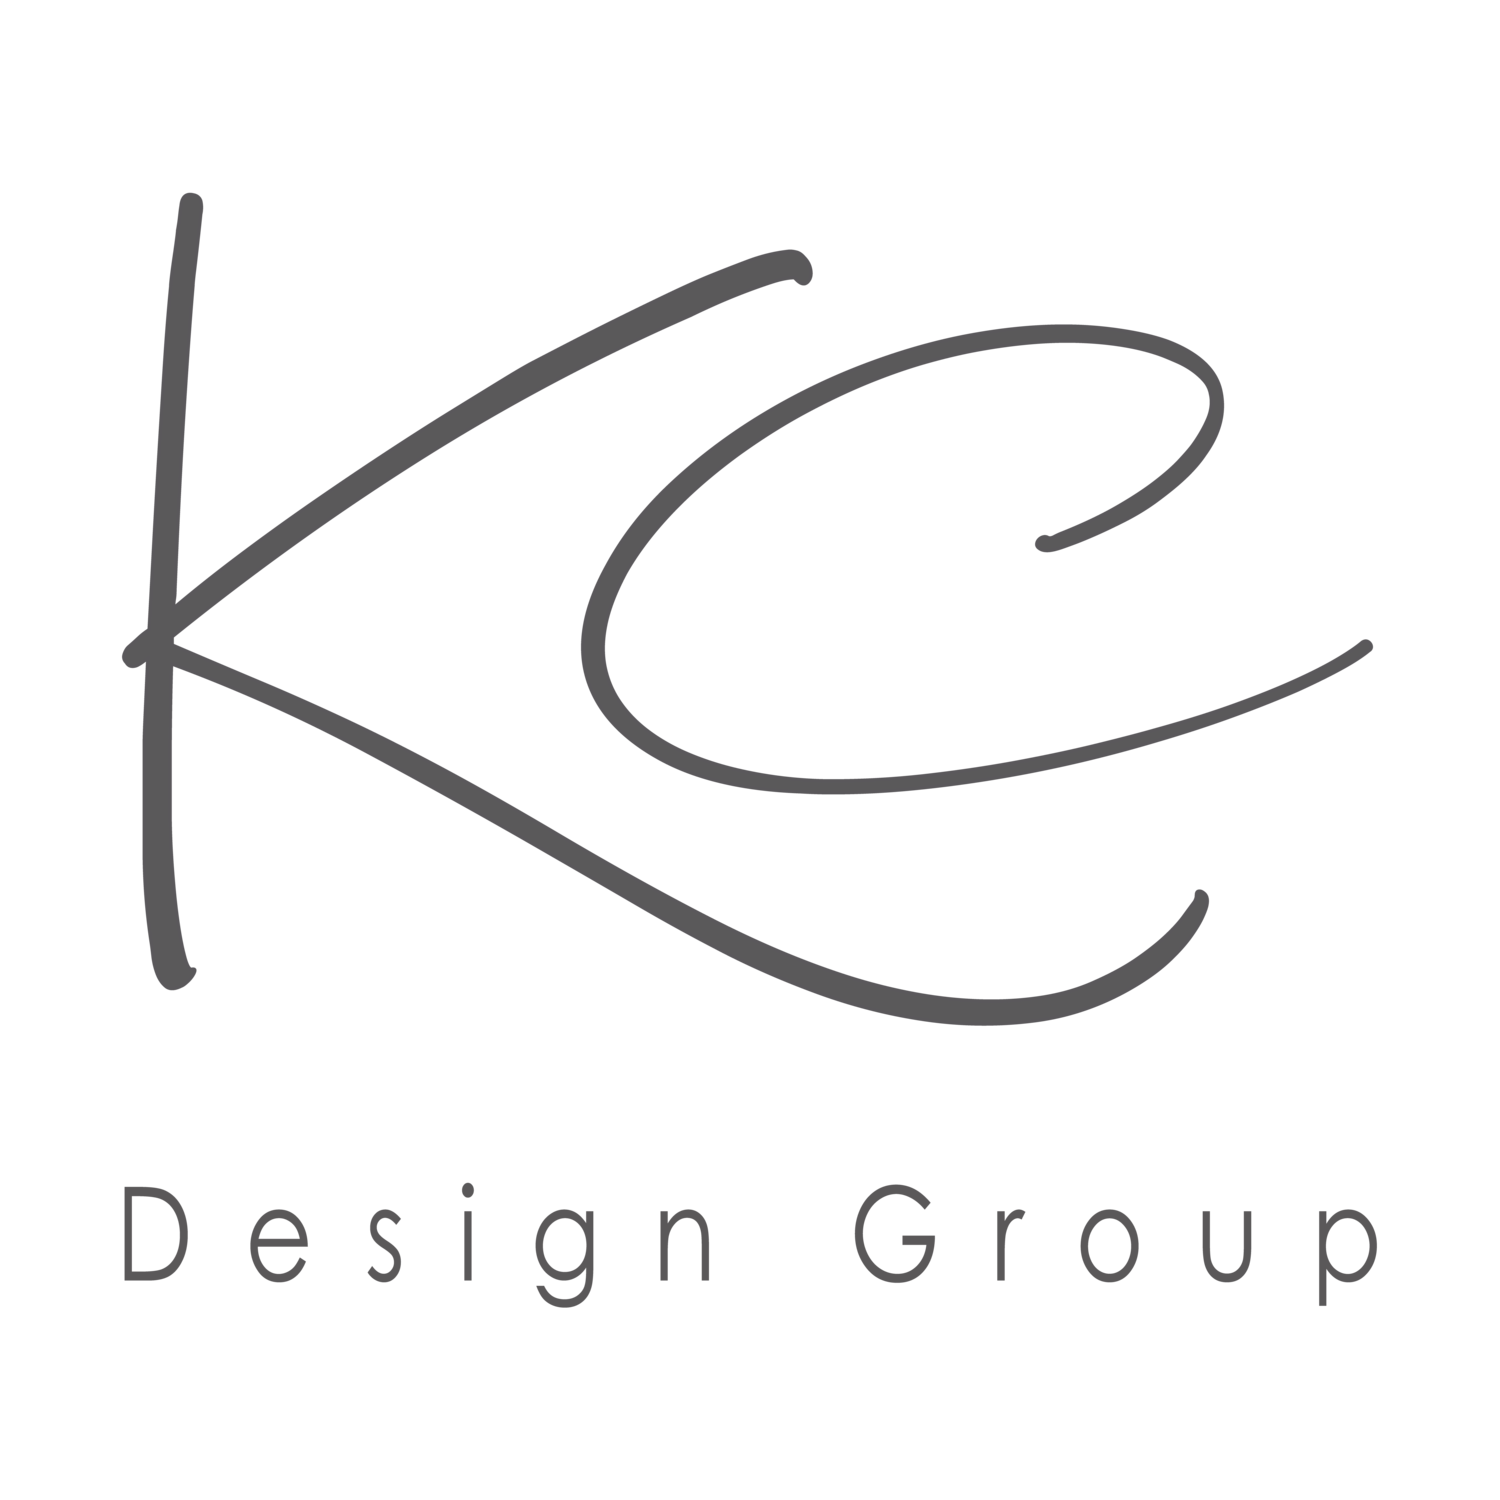 KC Design Group